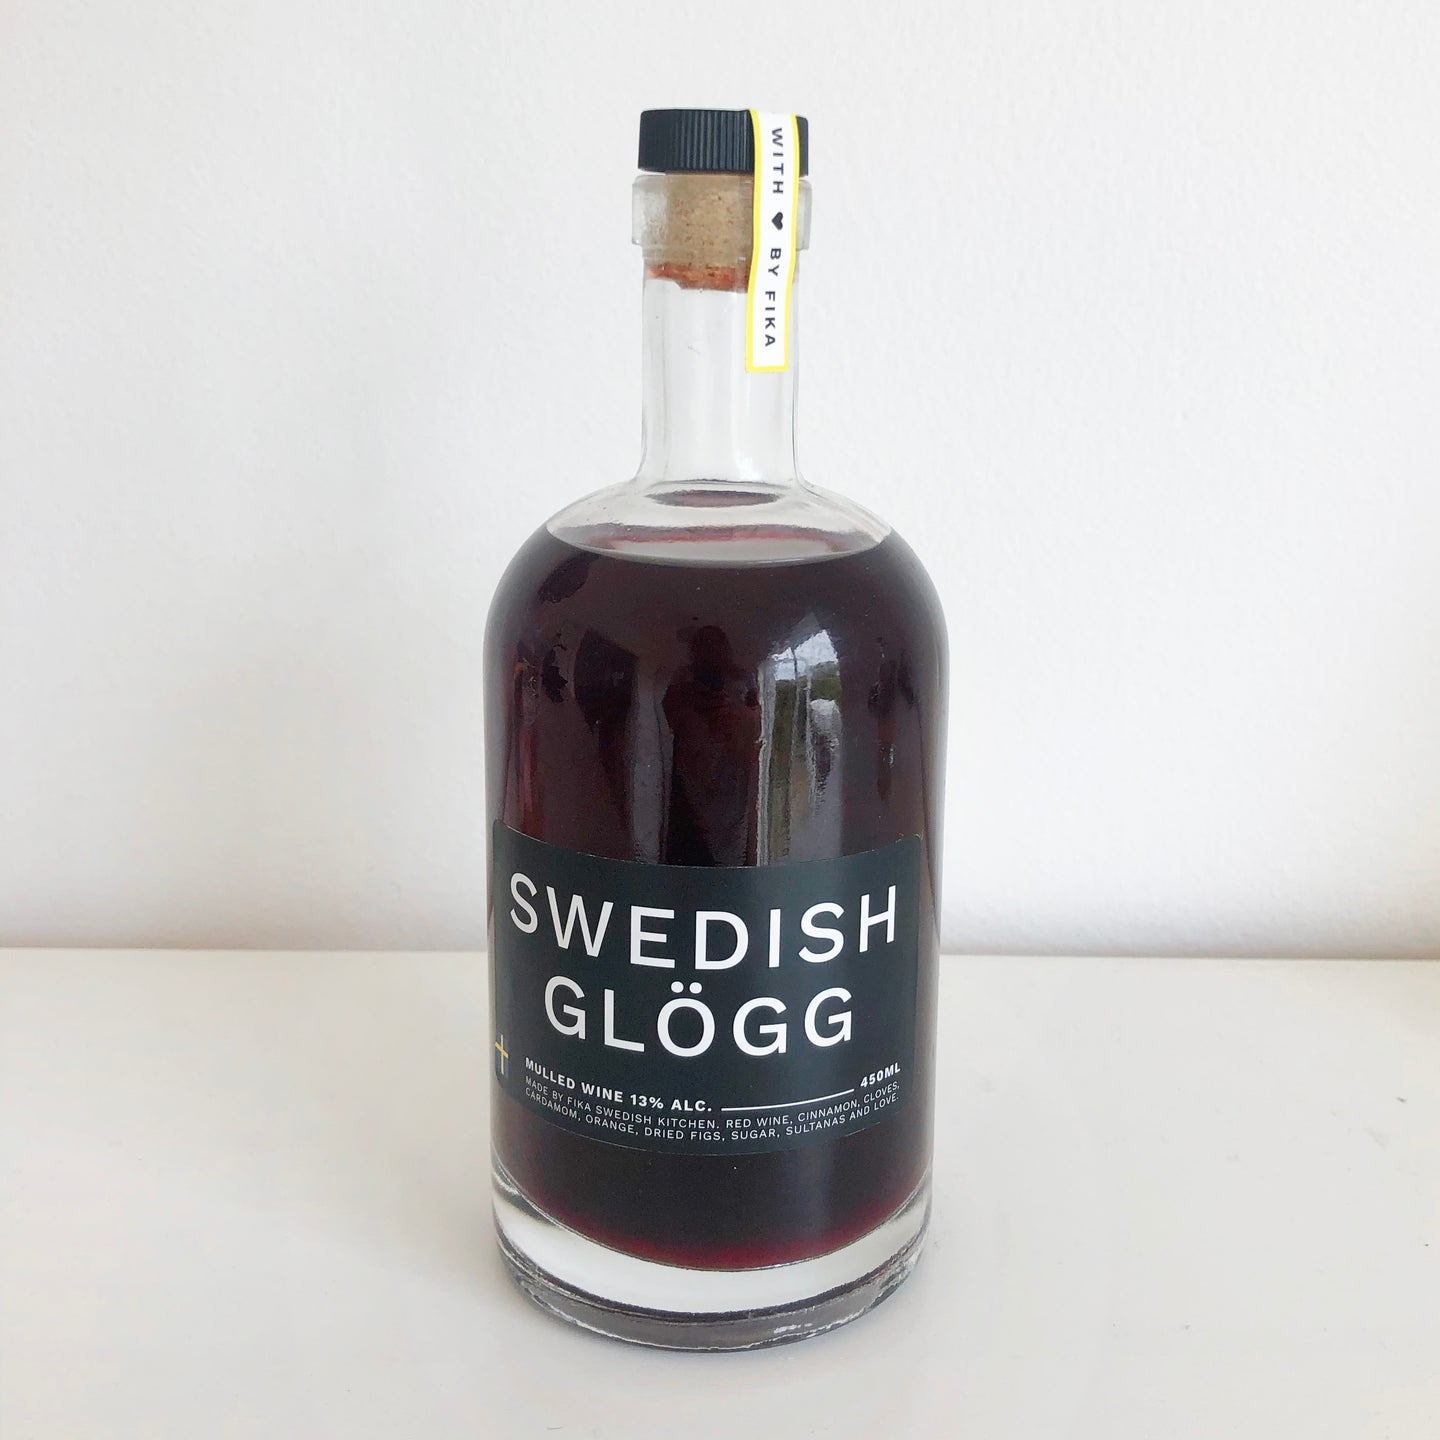 Fika's Mulled wine - Alcoholic Glögg